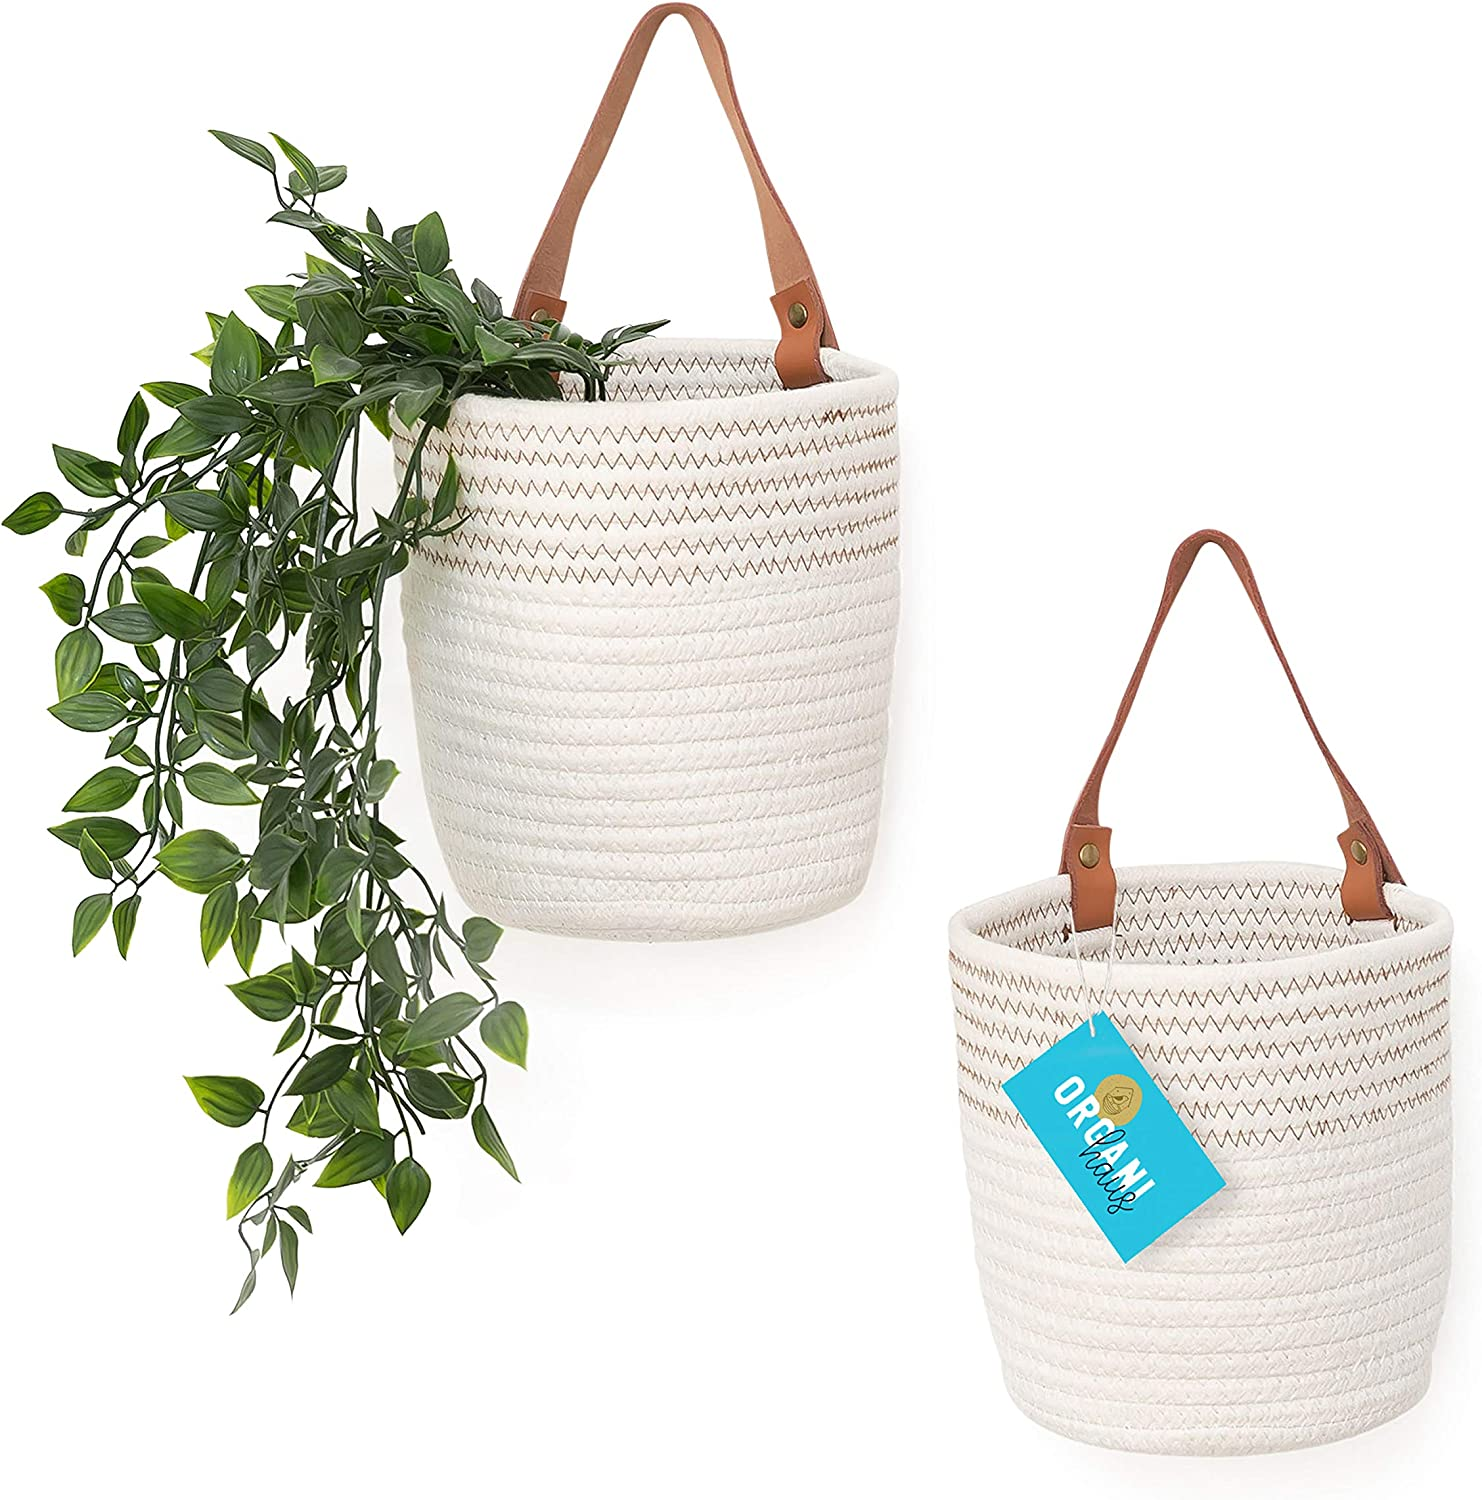 """OrganiHaus Hanging Woven Wall Basket Set with Genuine Leather Handles, Set of 2 Small Wall Mounted Farmhouse Baskets, Bathroom Wall Storage and Plant Hanger, 7"""" x 6"""" - White w/ Stitches"""